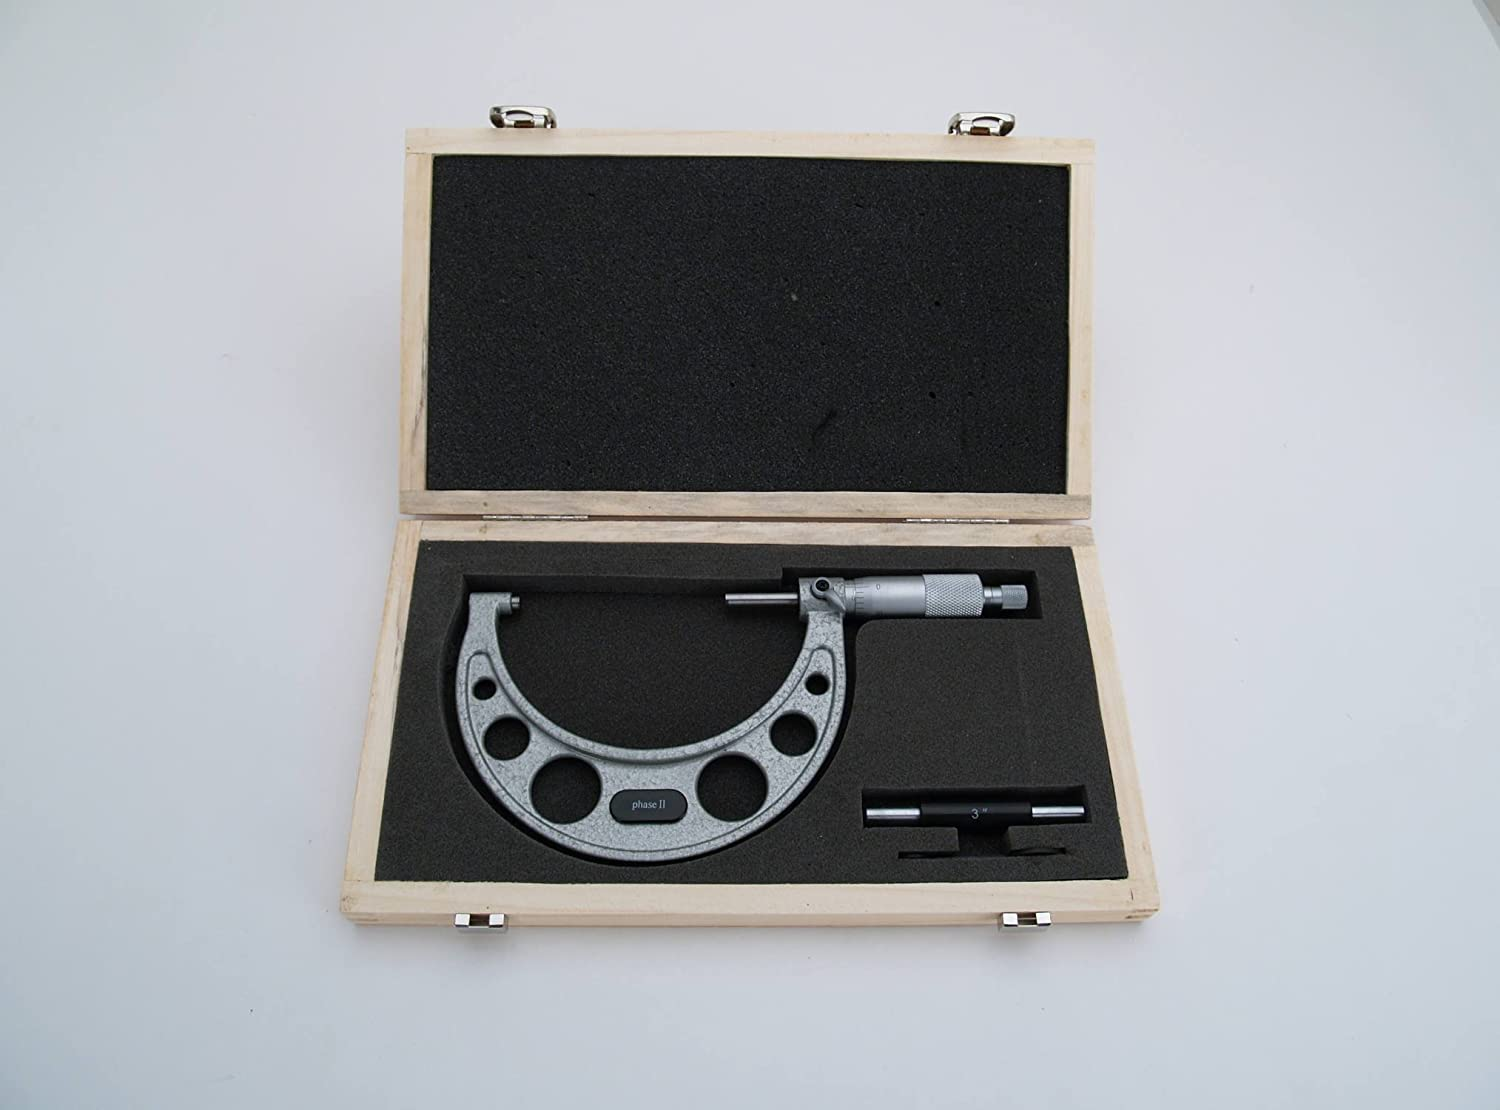 5-6 .0001 Powerhouse Products COMP Cams POW151006 Micrometer